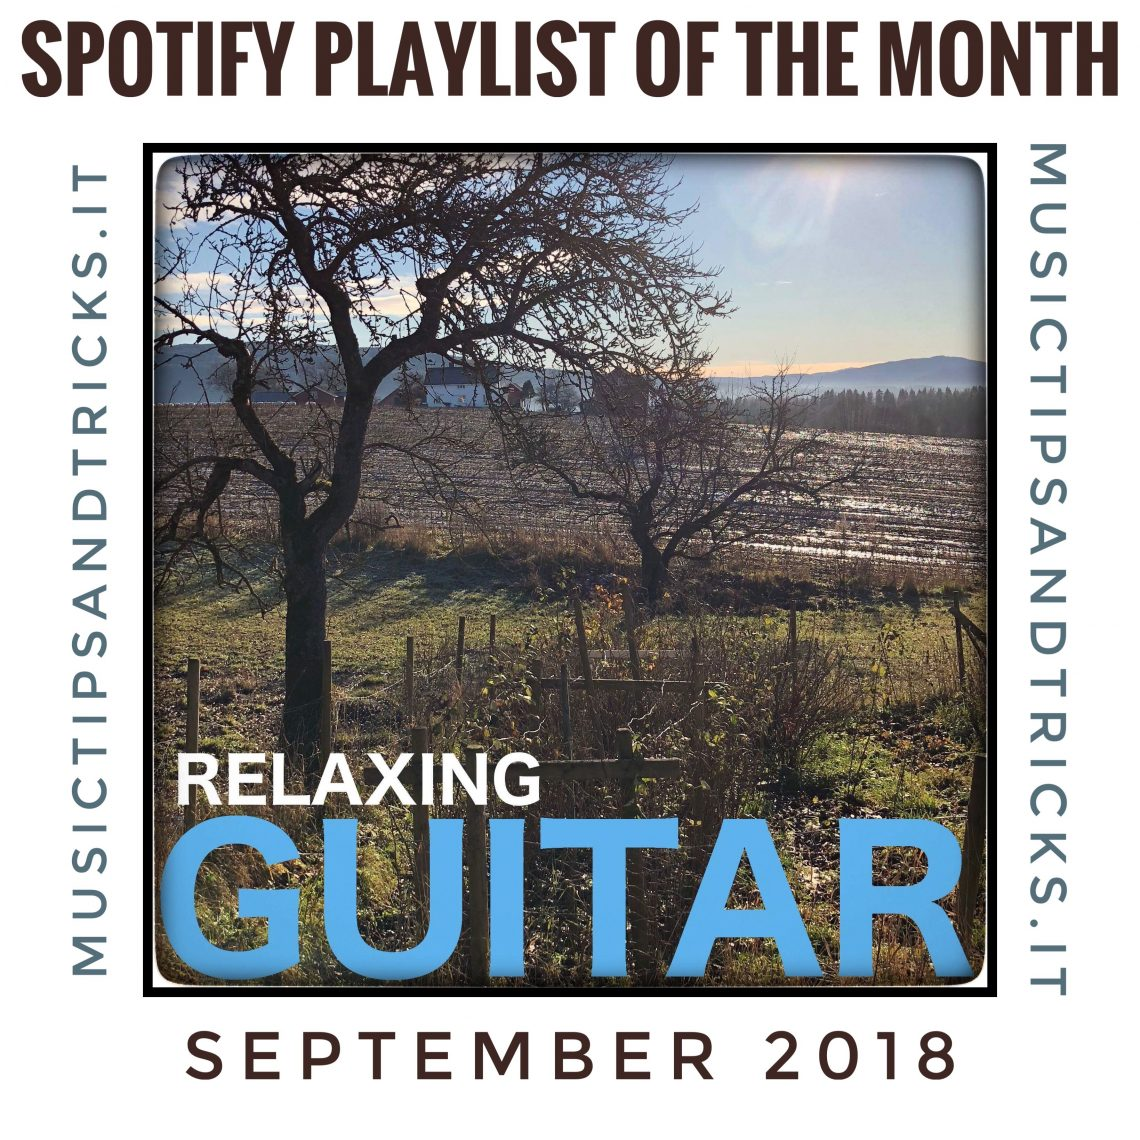 Spotify Playlist of the Month -Relaxing Guitar - Music Tips and Tricks